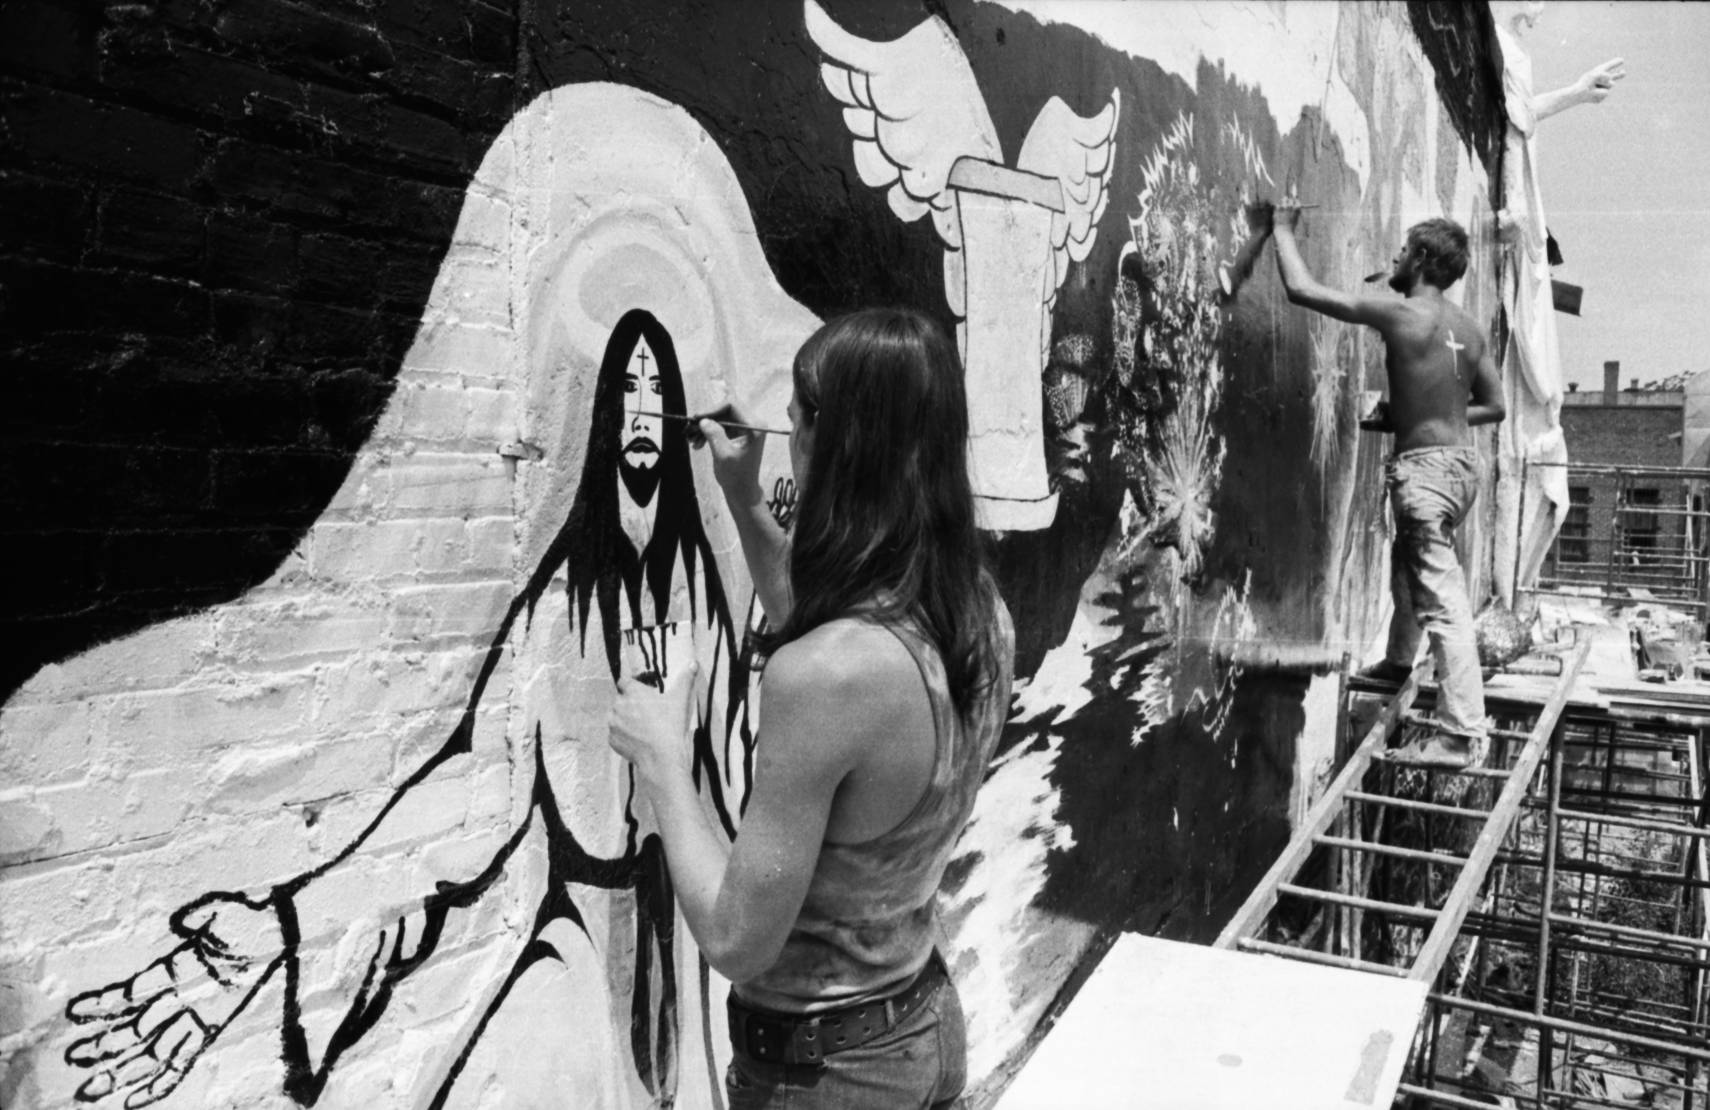 Hippie graffiti art 1